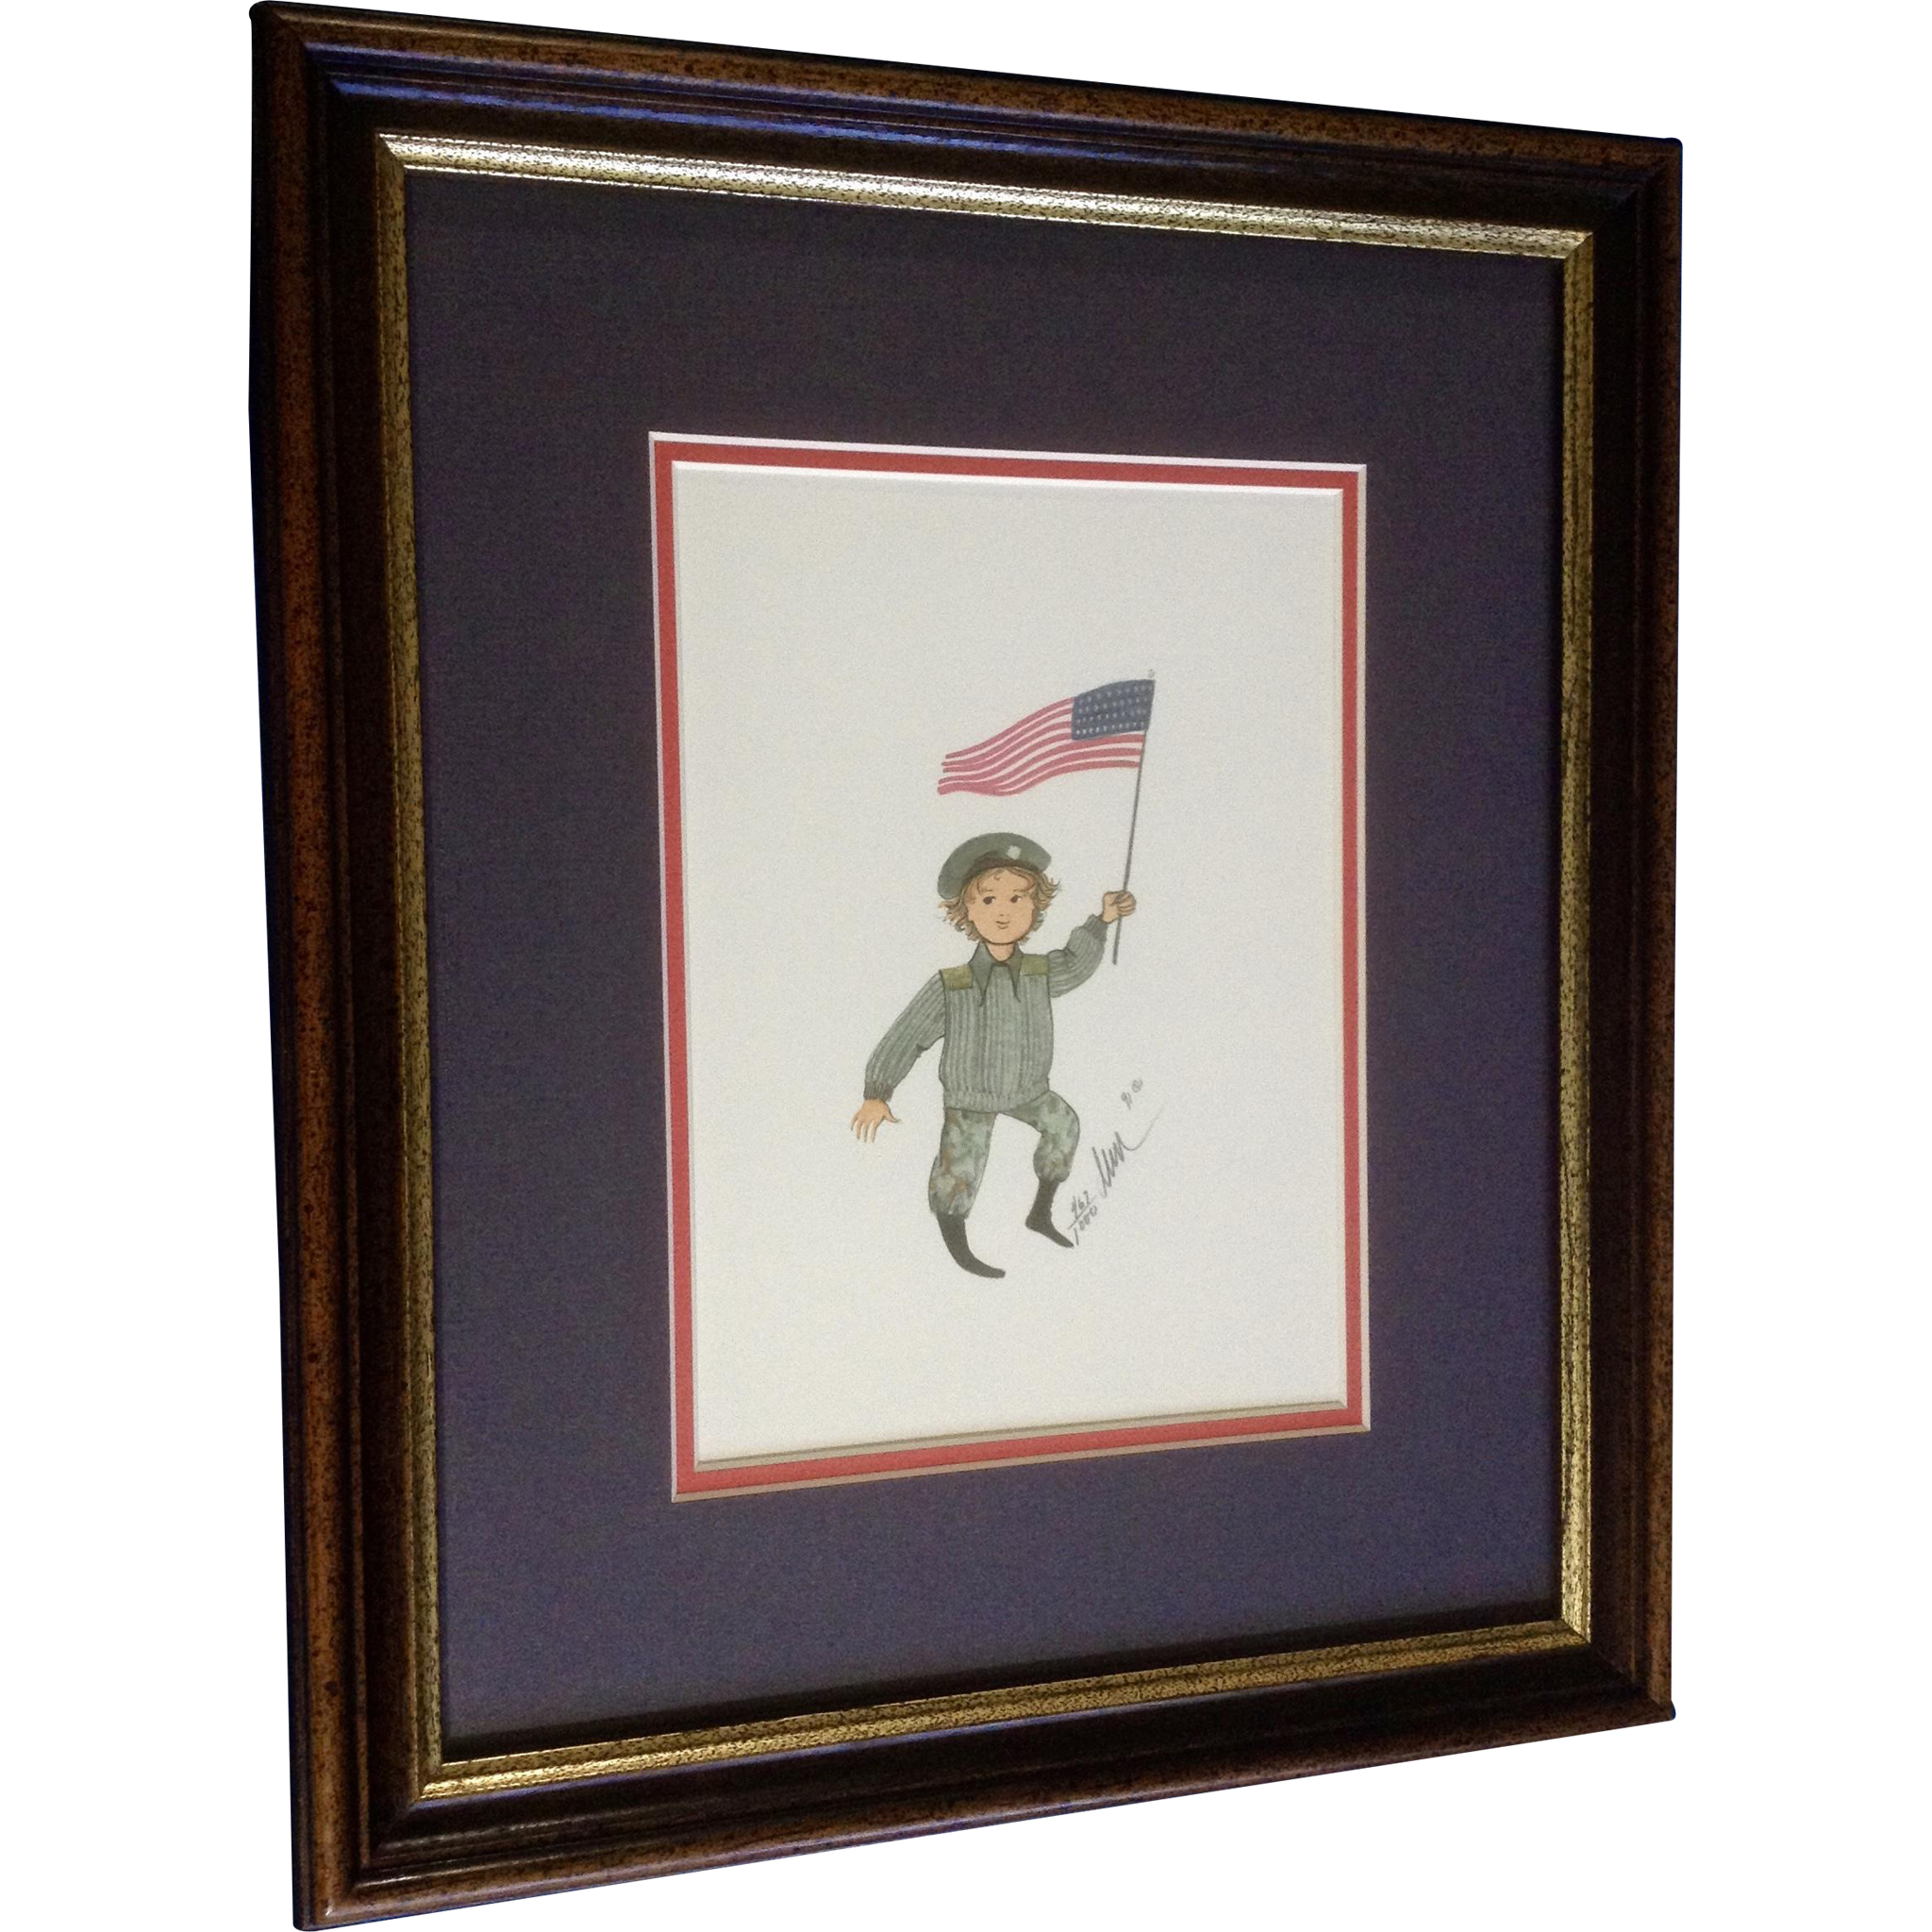 469416c24aa31 P Buckley Moss Army Boy Holding American Flag Rare Limited Edition ...